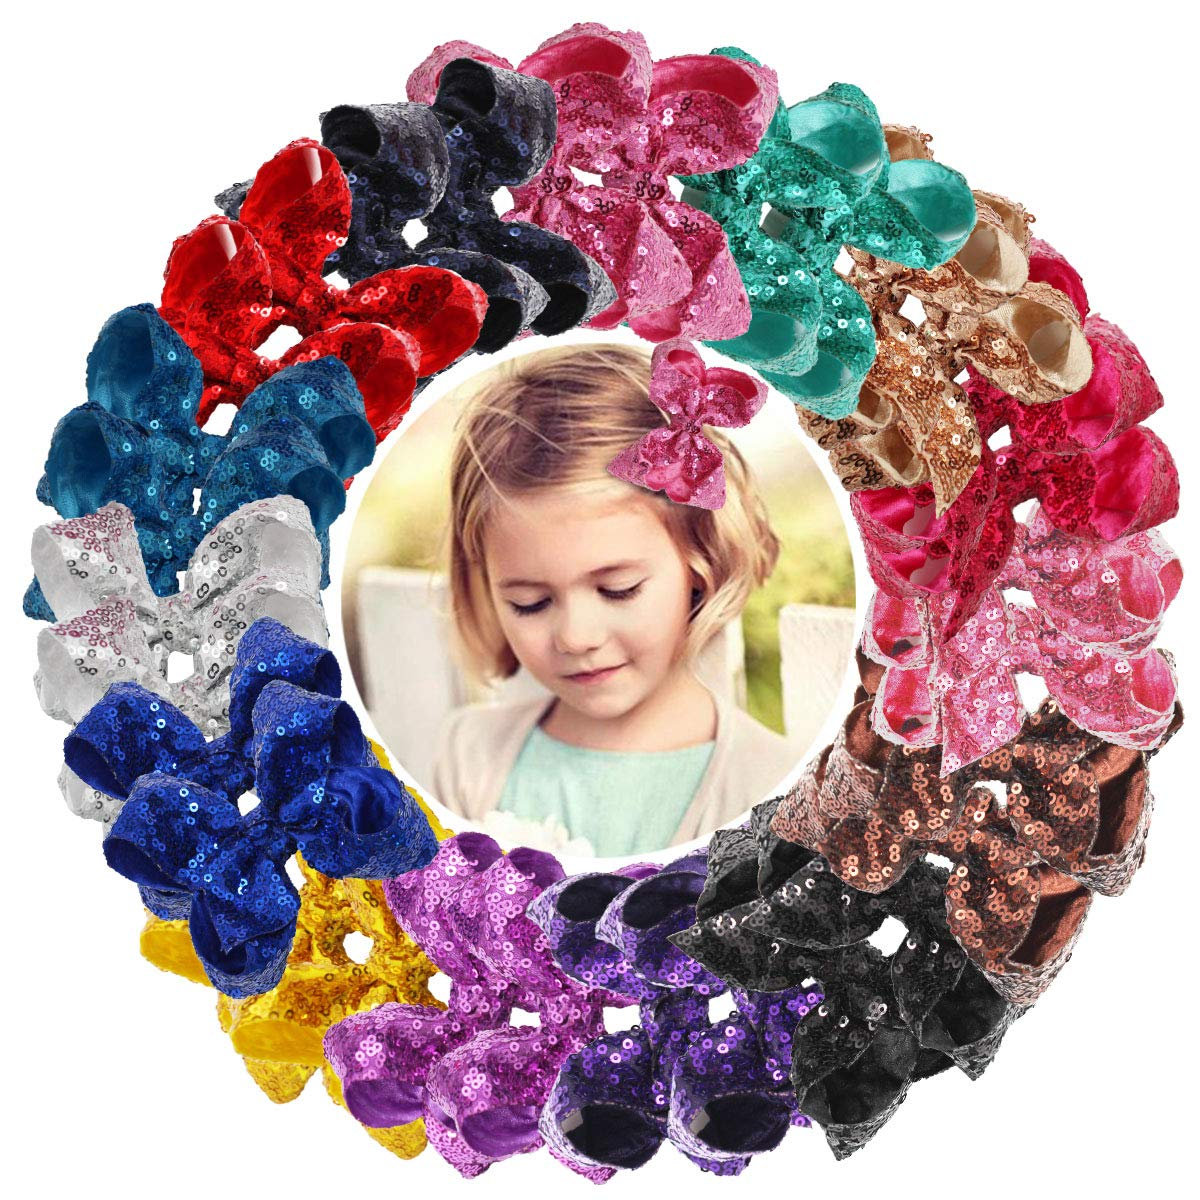 DED 30pcs 2021new shipping free shipping Dallas Mall Sparkly Hair Bows Clips 4 Sequin Alli inch Bow Glitter